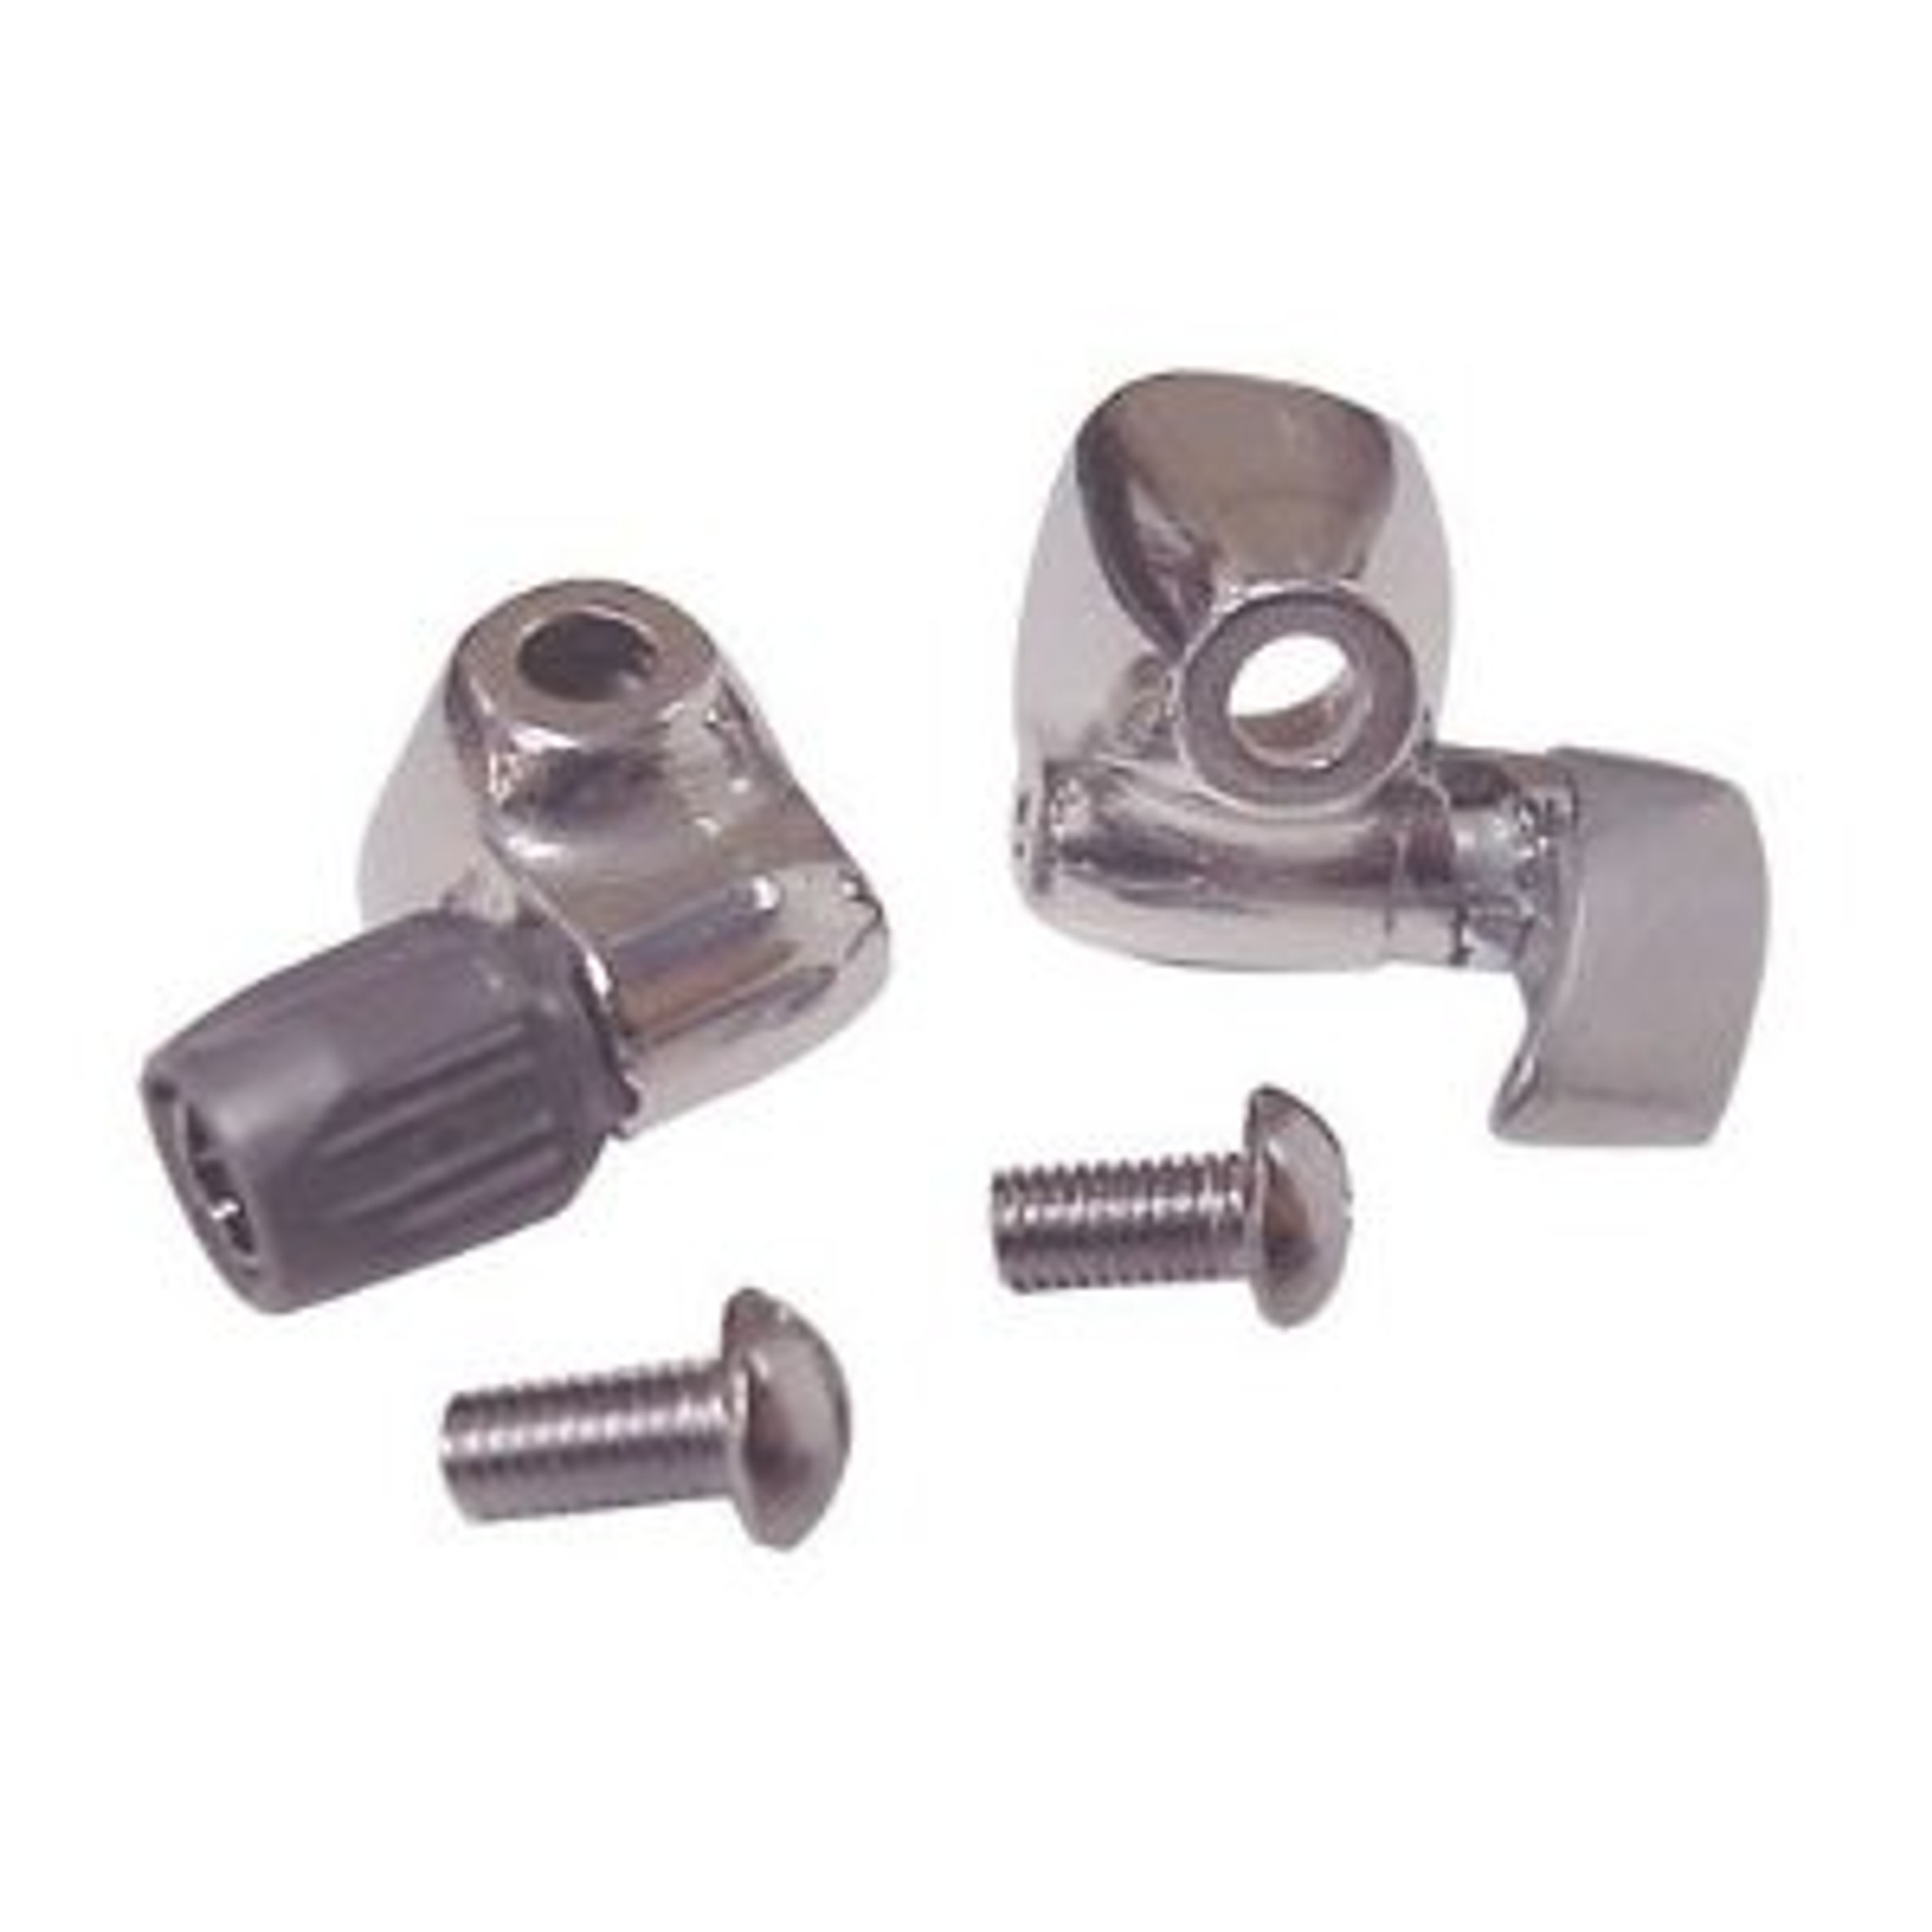 Shimano Dura Ace STI DT Adapter Barrel Adjusters (SM-ST74) & BB Cable Guide (SM-SP17-M): NEW